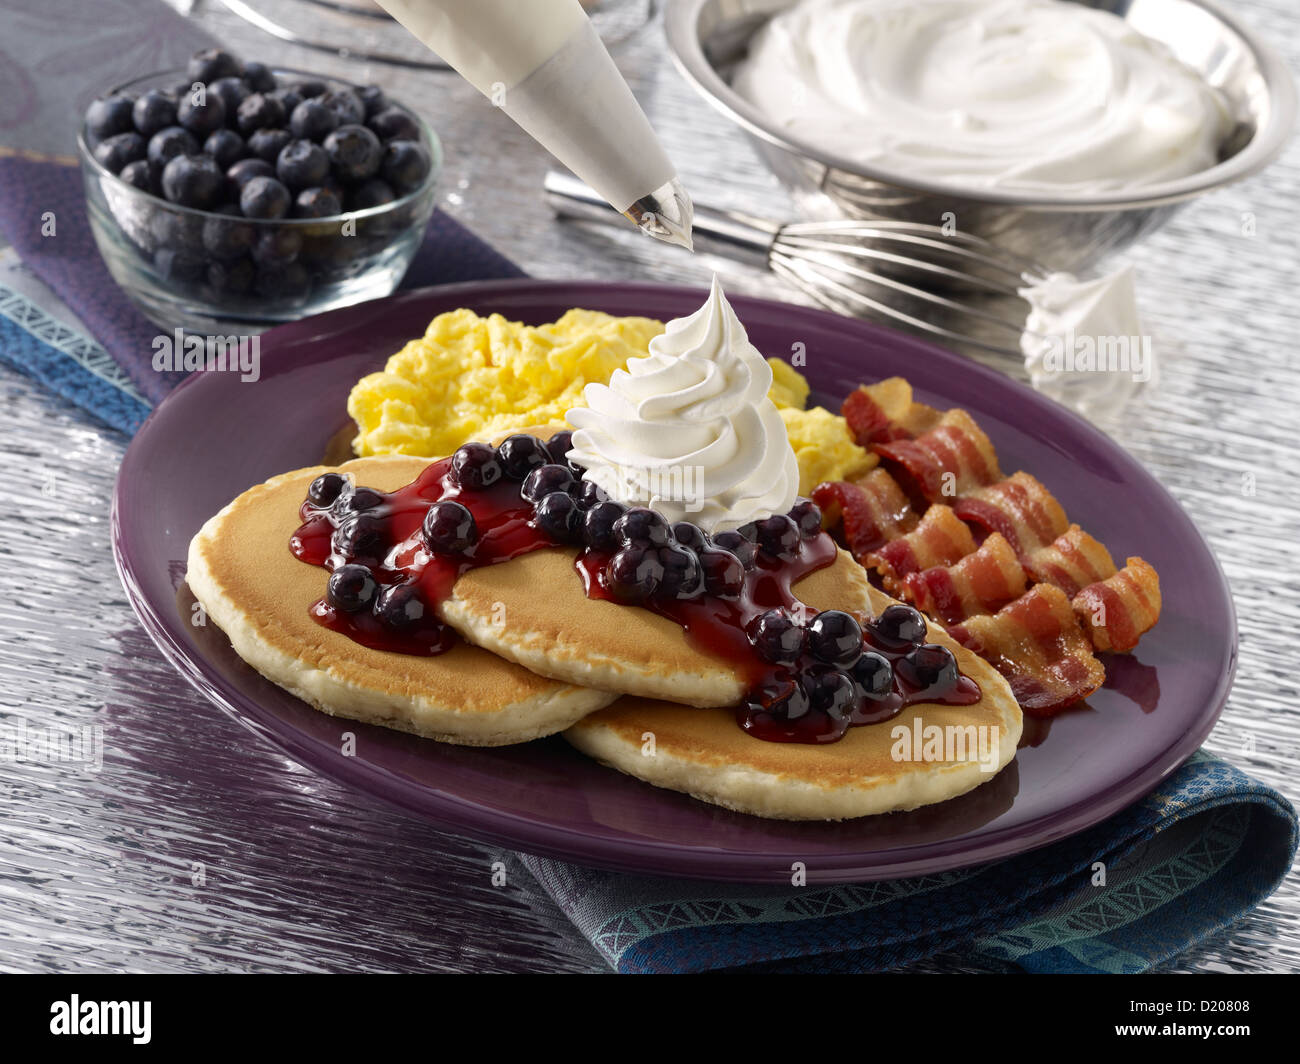 Blueberry Pancakes with Whipped Cream - Stock Image